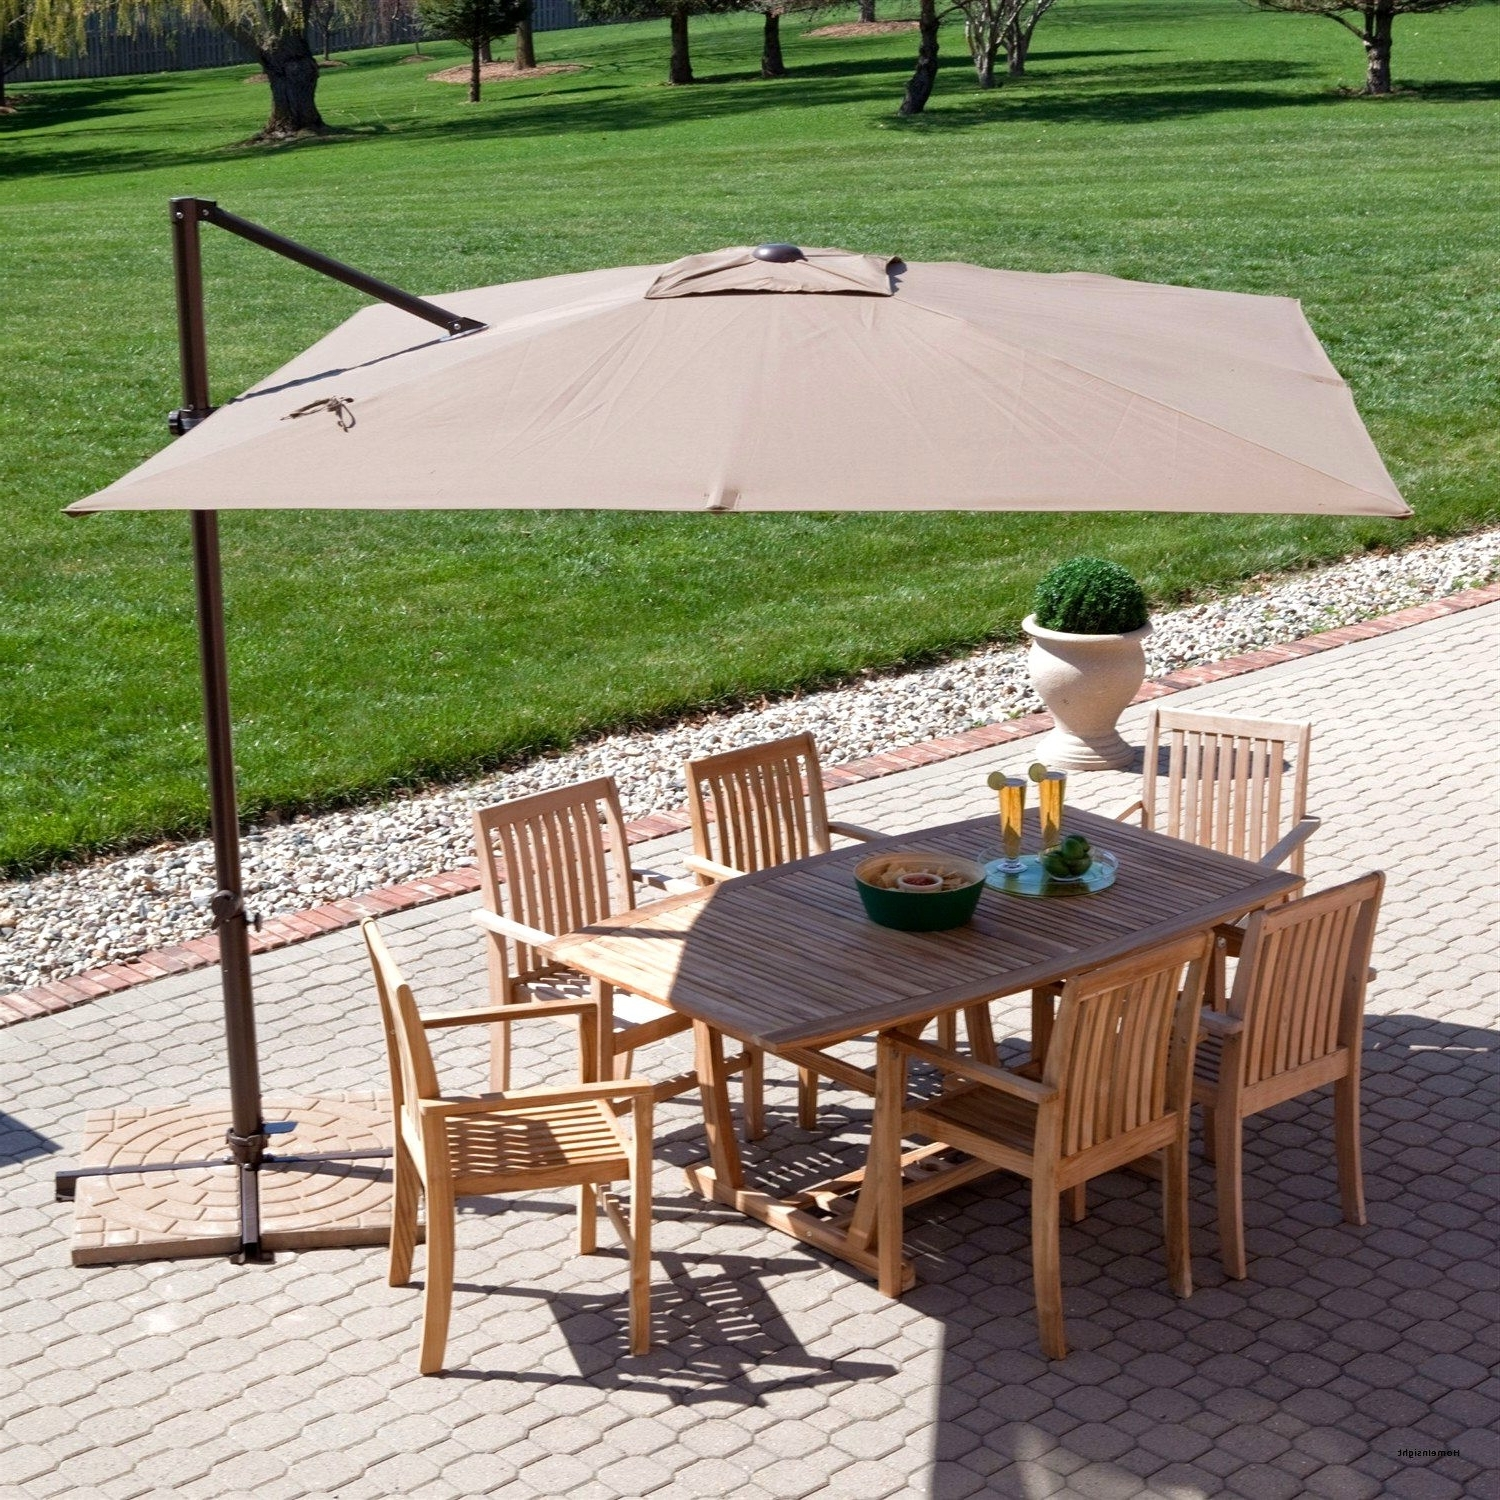 Most Popular 25 Fresh Patio Umbrella Big Lots Design Of Coral Coast 8 X 11 Ft Regarding Big Lots Patio Umbrellas (View 14 of 20)